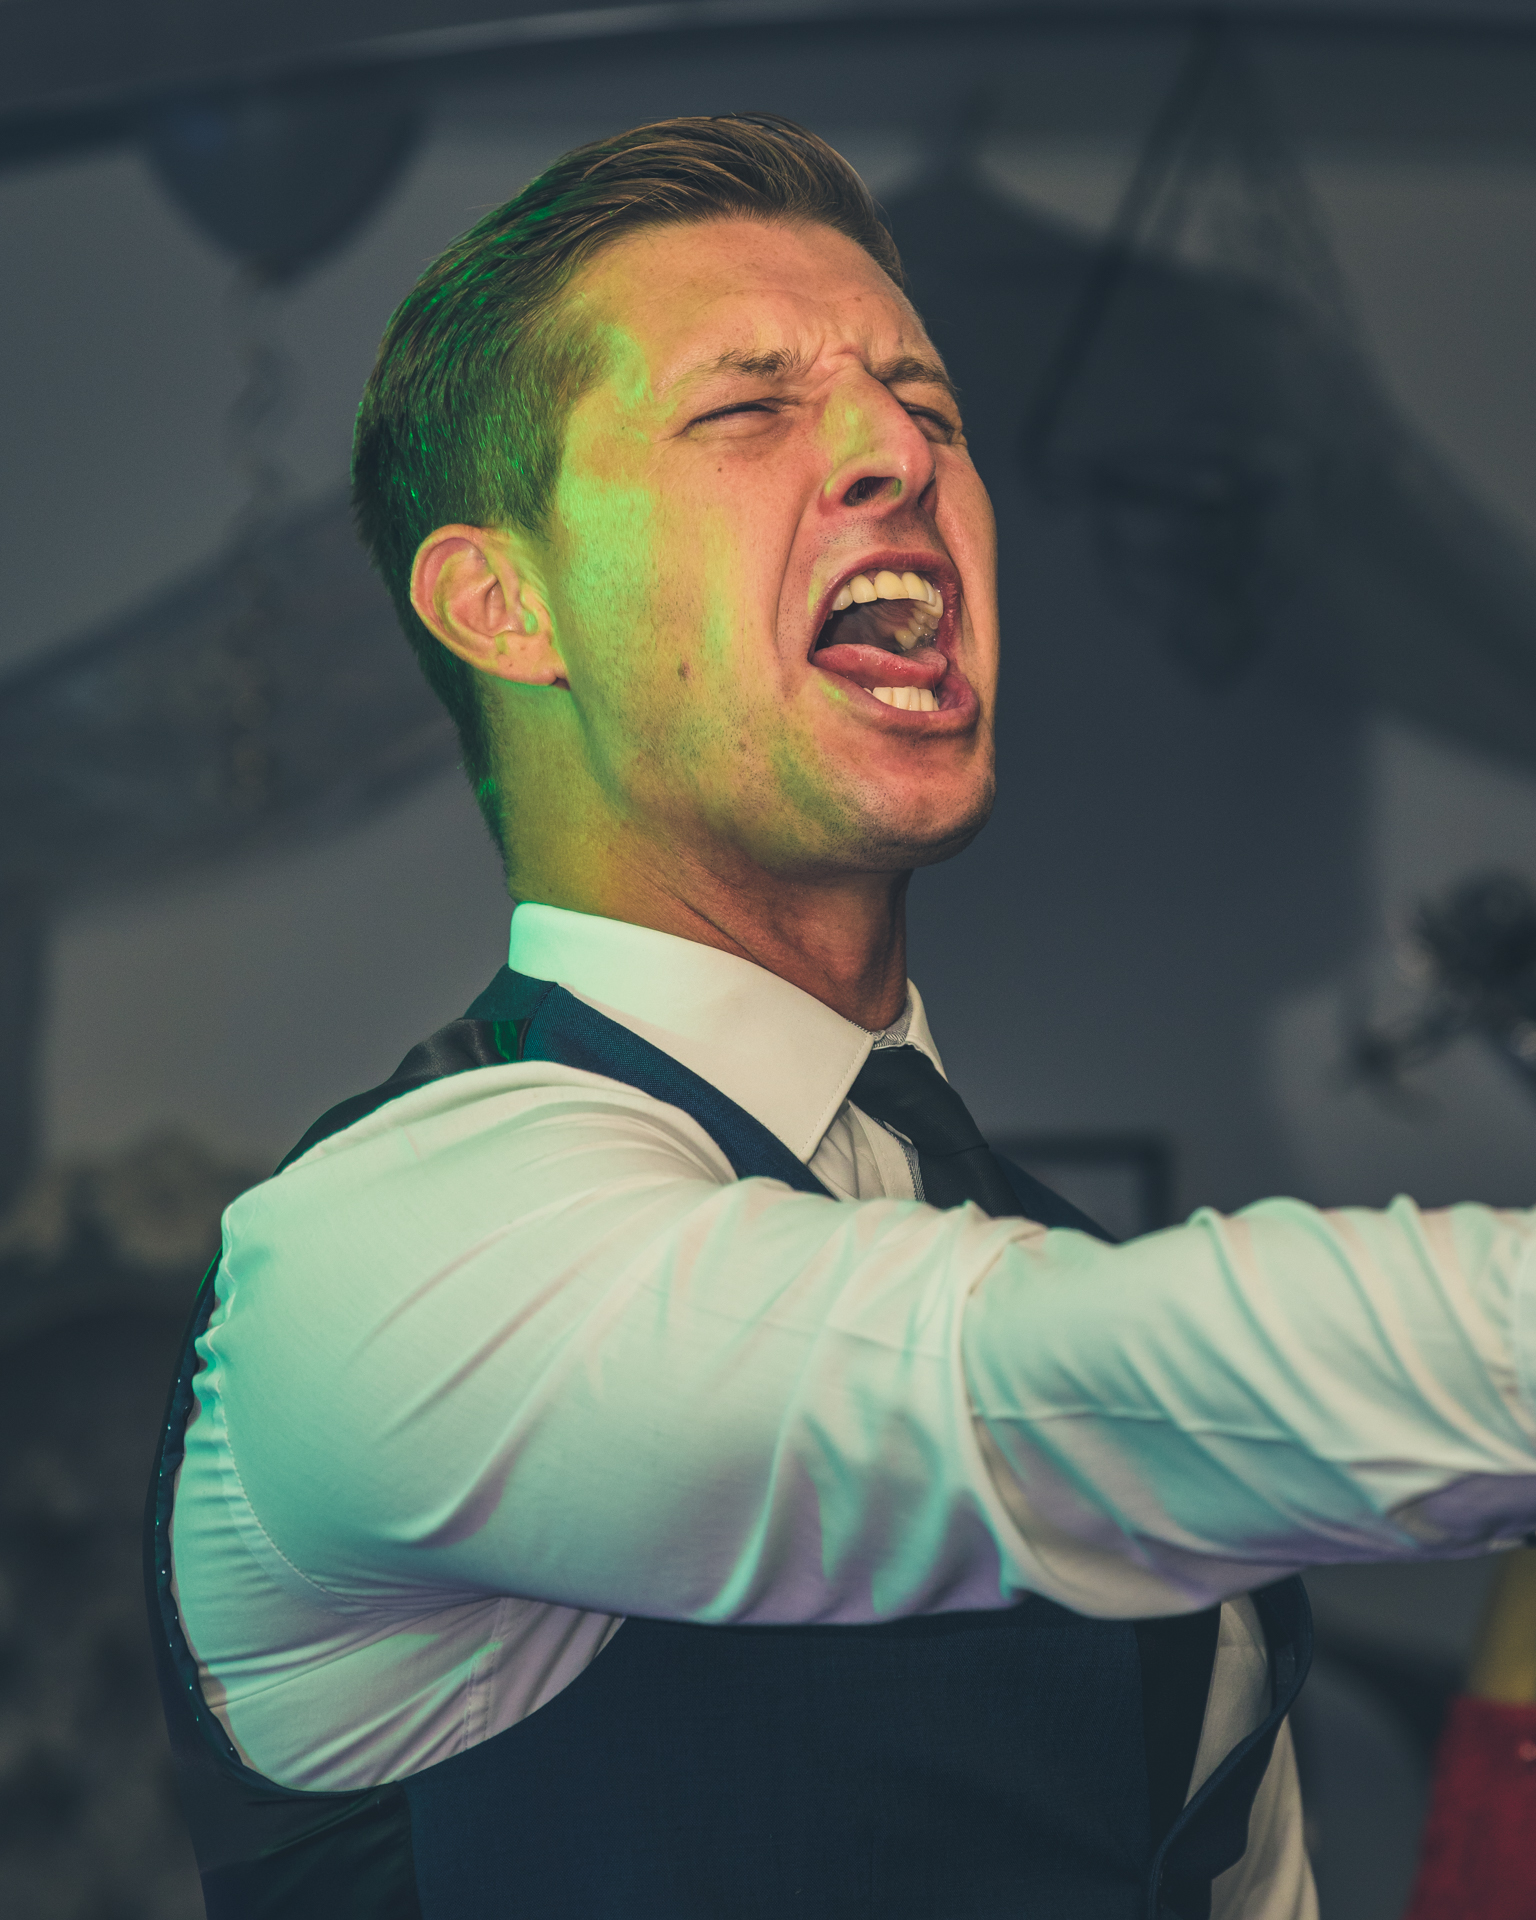 A chest up colour image of Mr X seen here on the dance floor at a company birthday party. He has his right arm extended and appears to be 'singing' (mouth wide open) whilst dancing. He wears a white shirt and a dark coloured waistcoat, and he has his hair swept backwards.